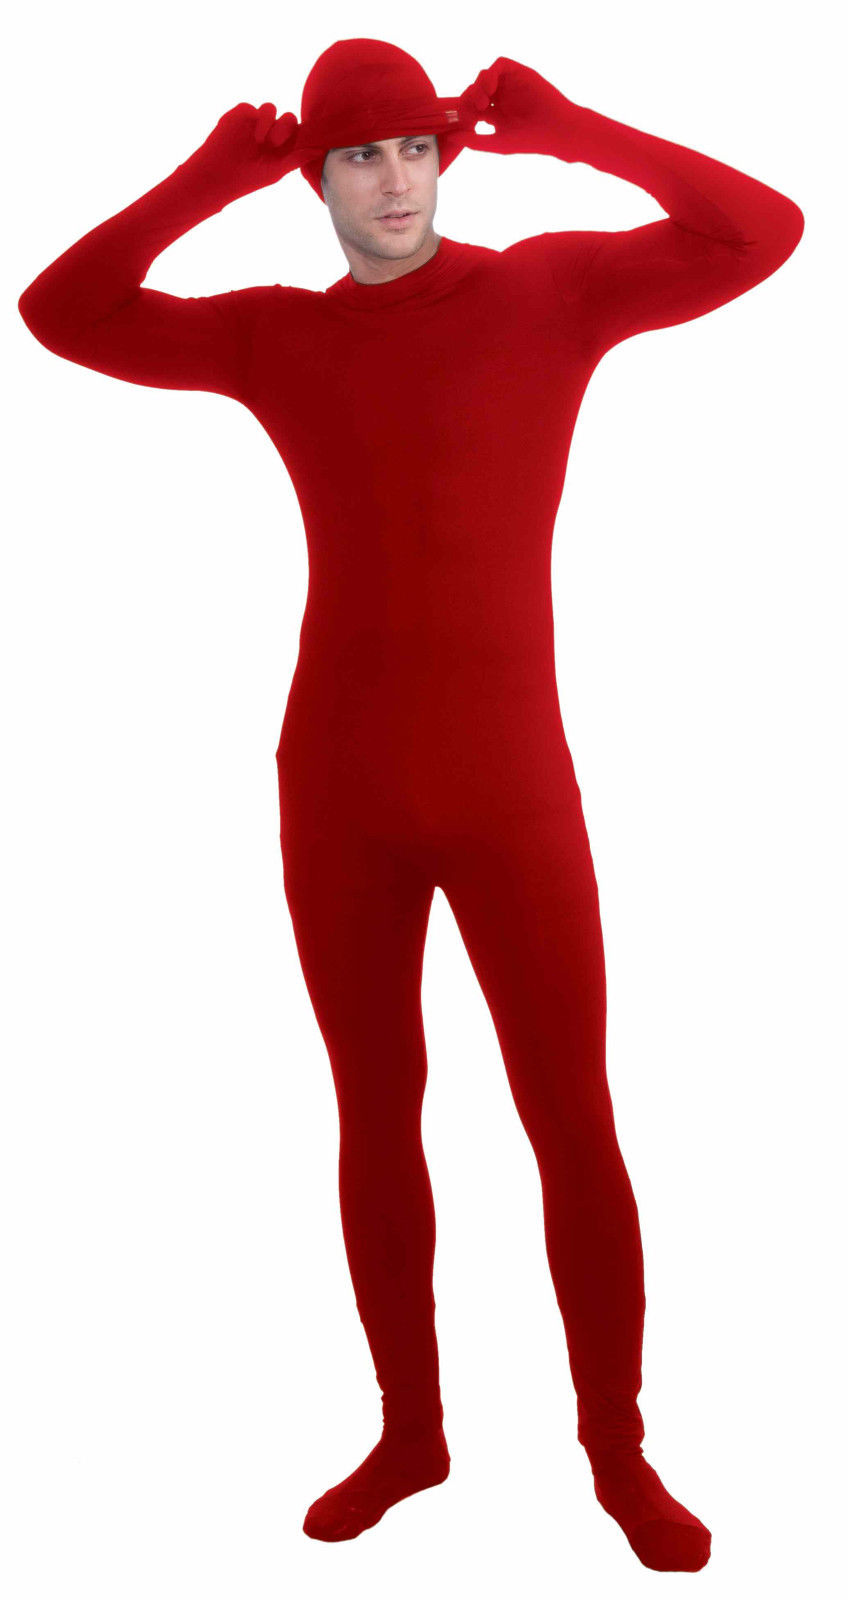 the disappearing man 2nd skin adult red unitard costume forum